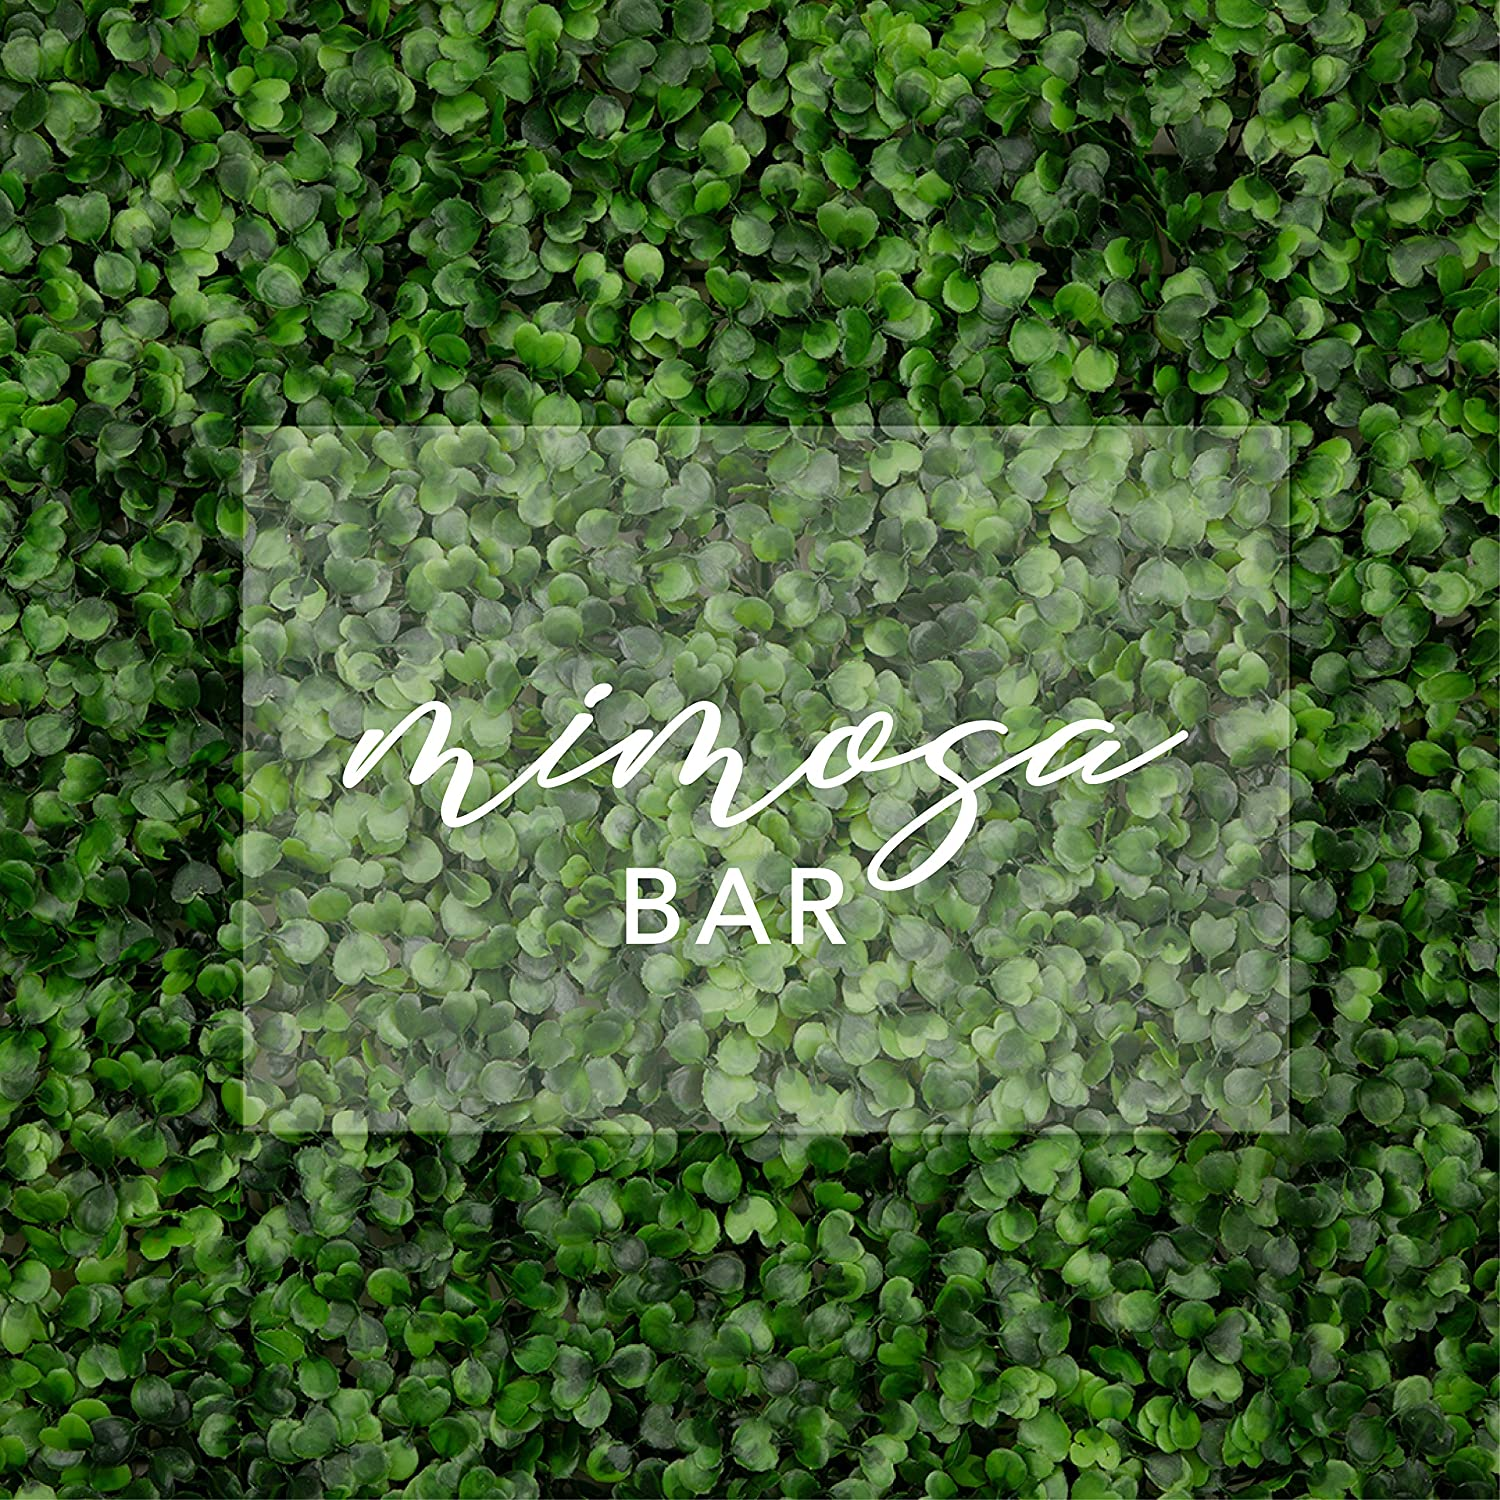 Andaz Press Mimosa Bar Acrylic Sign, 7.5 x 11 Inch Horizontal, Stand Included, Signage for Wedding, Bridal Shower, Bachelorette, Engagement, Birthday, Graduation, Holiday, Events, Bar, Bar Cart